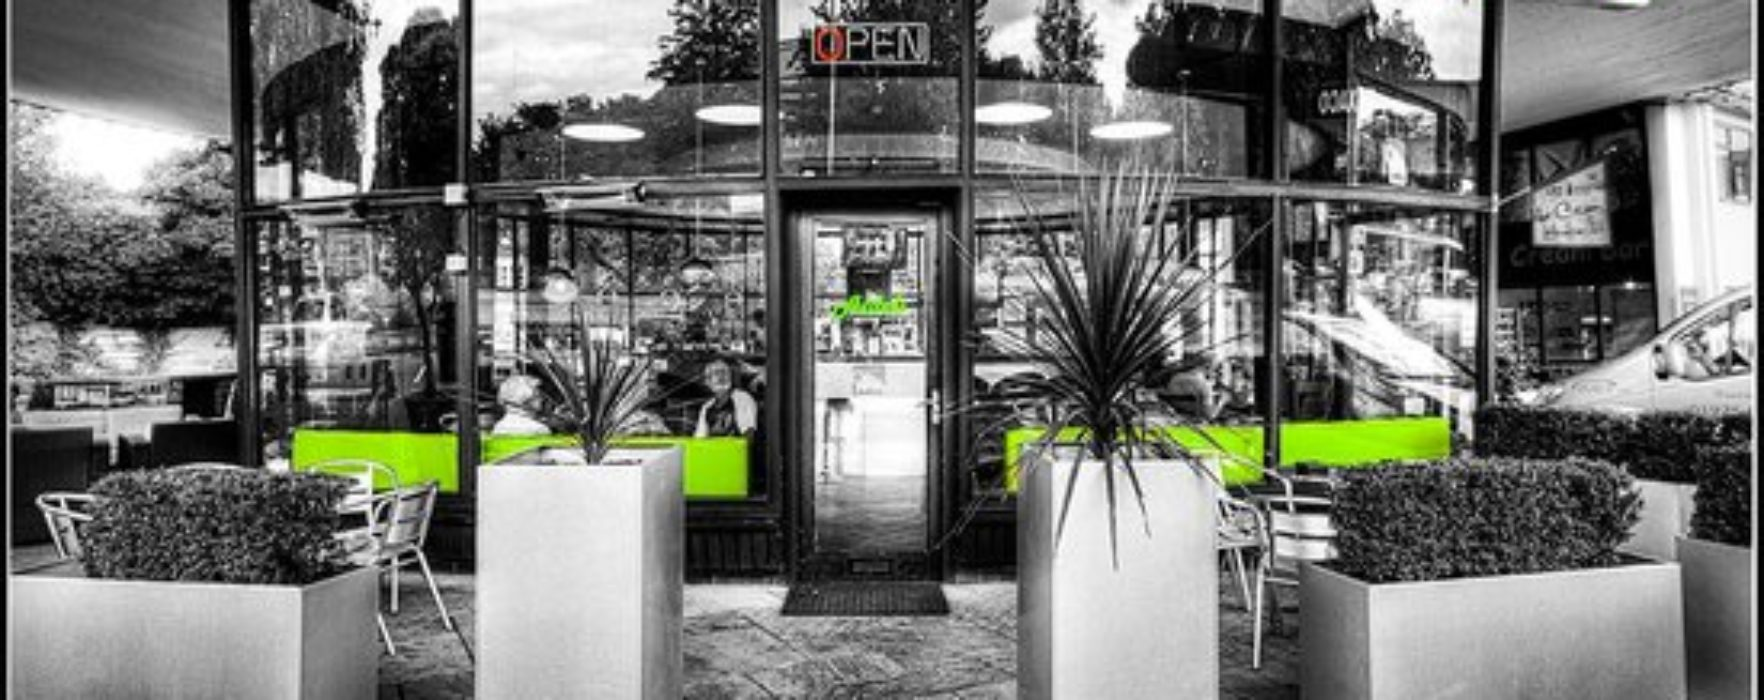 Experience a slice of the big apple in Alderley Edge's answer to the NY Deli